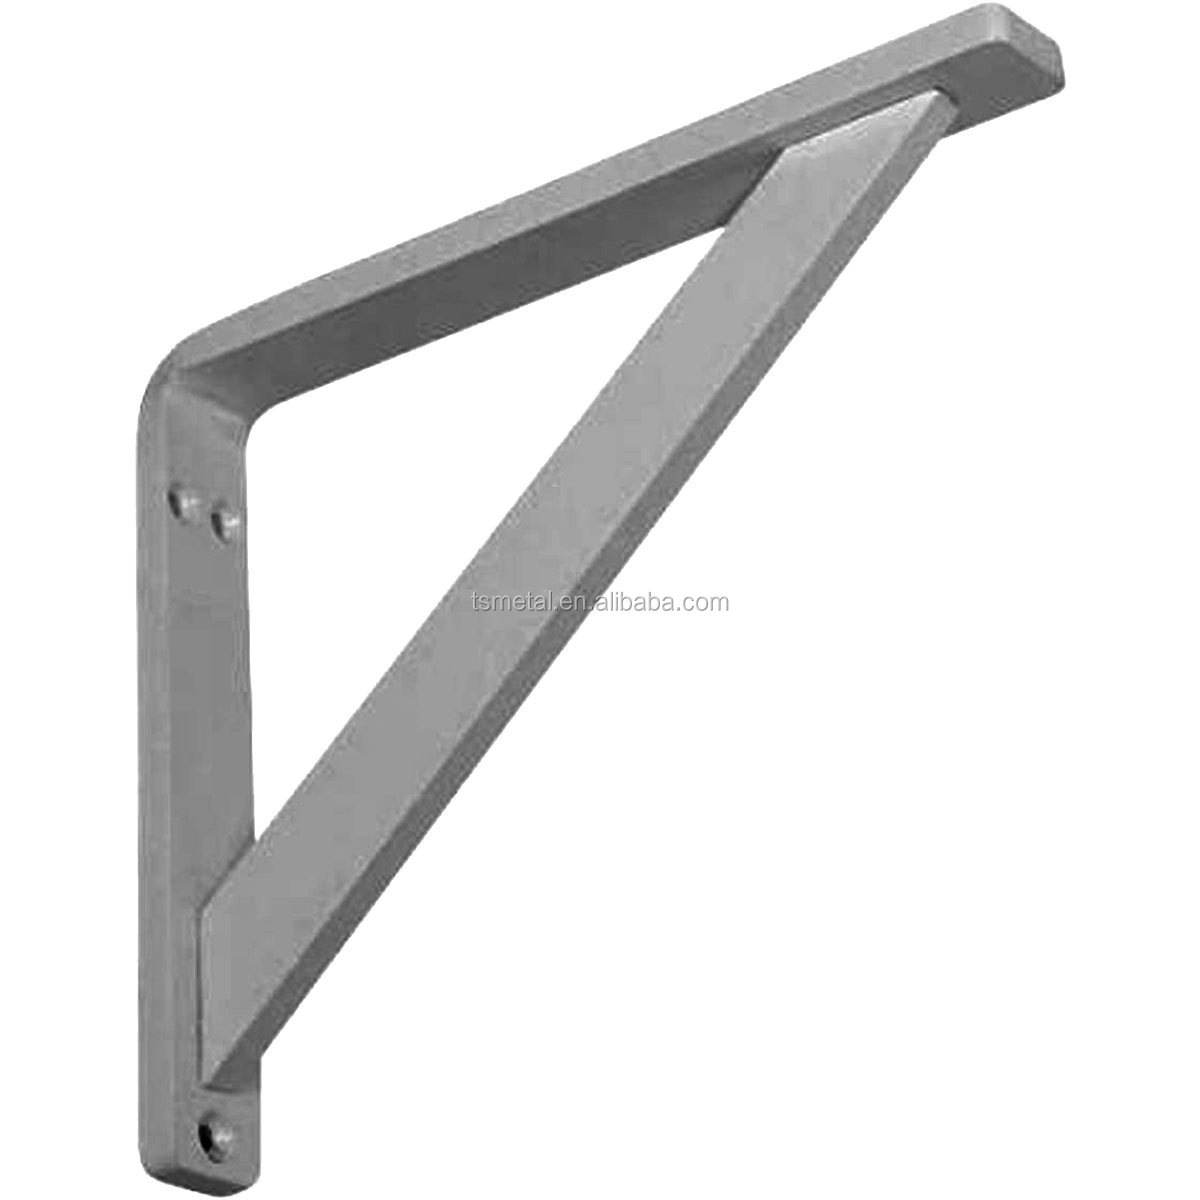 brackets,metal support brackets,Made of Metal - Support Brackets